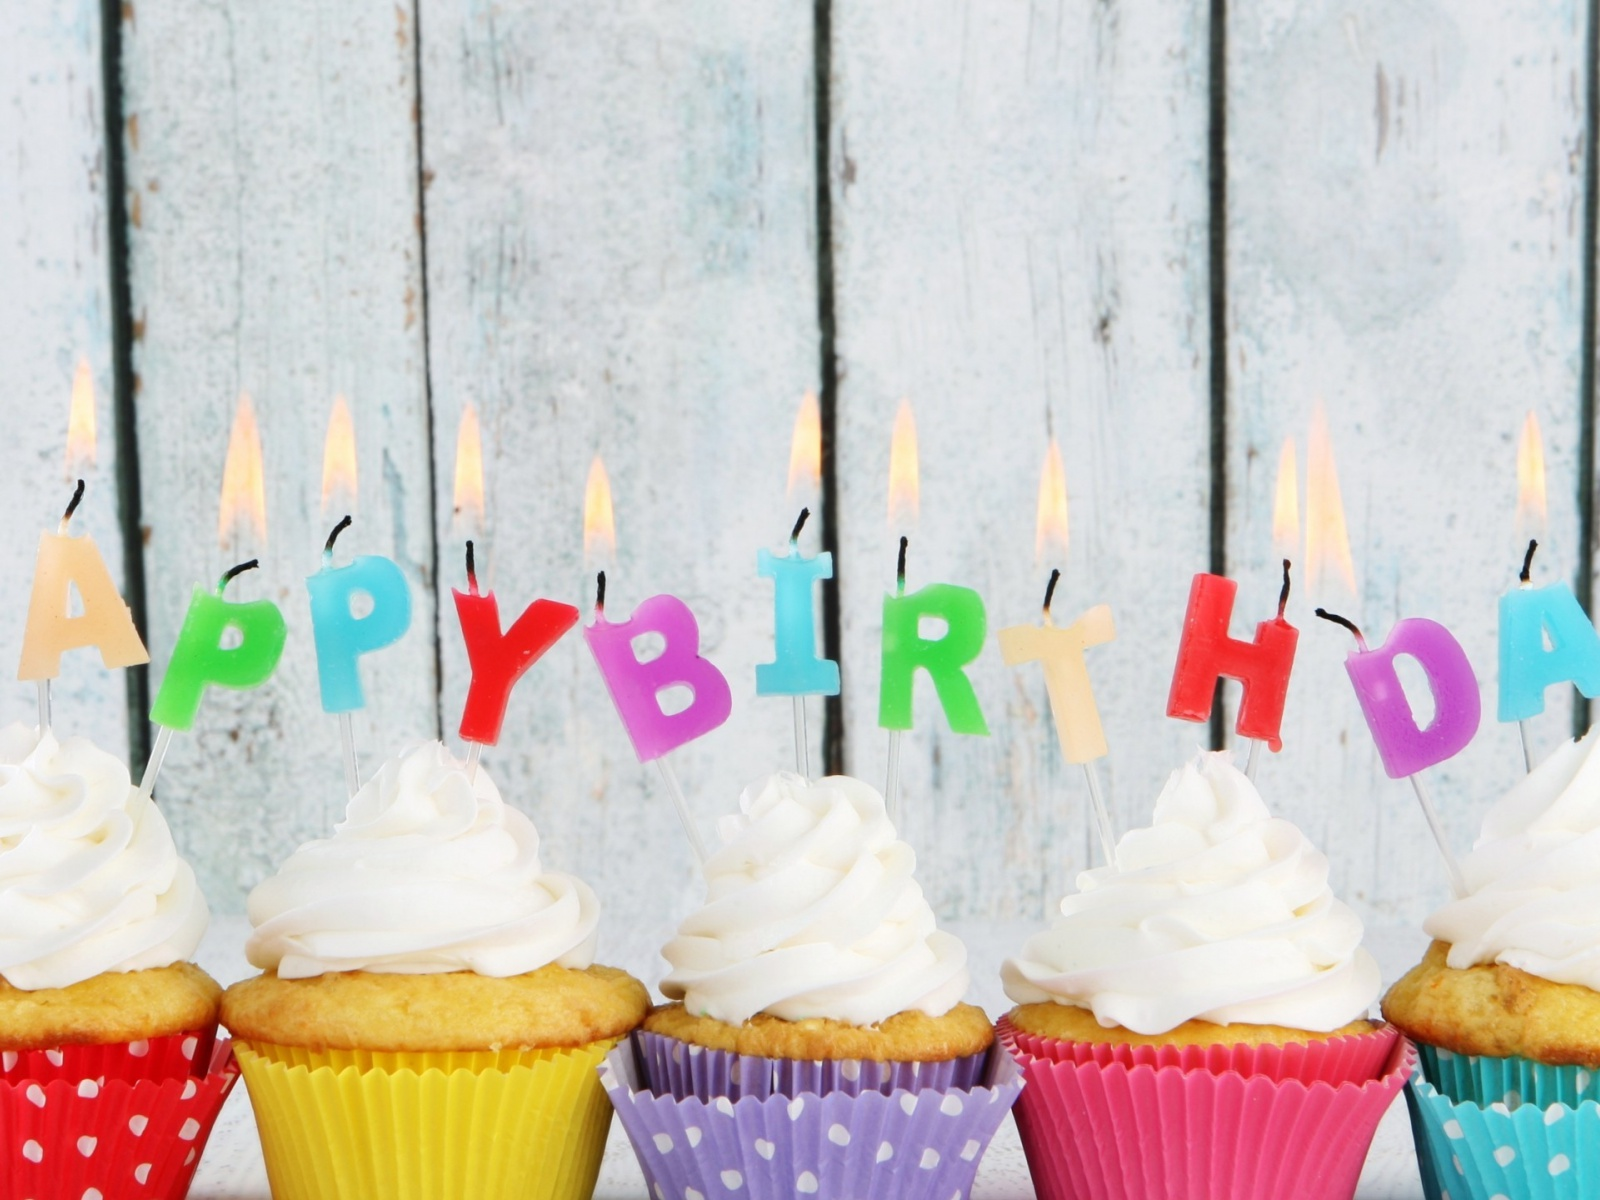 how to change your birthday on twitter